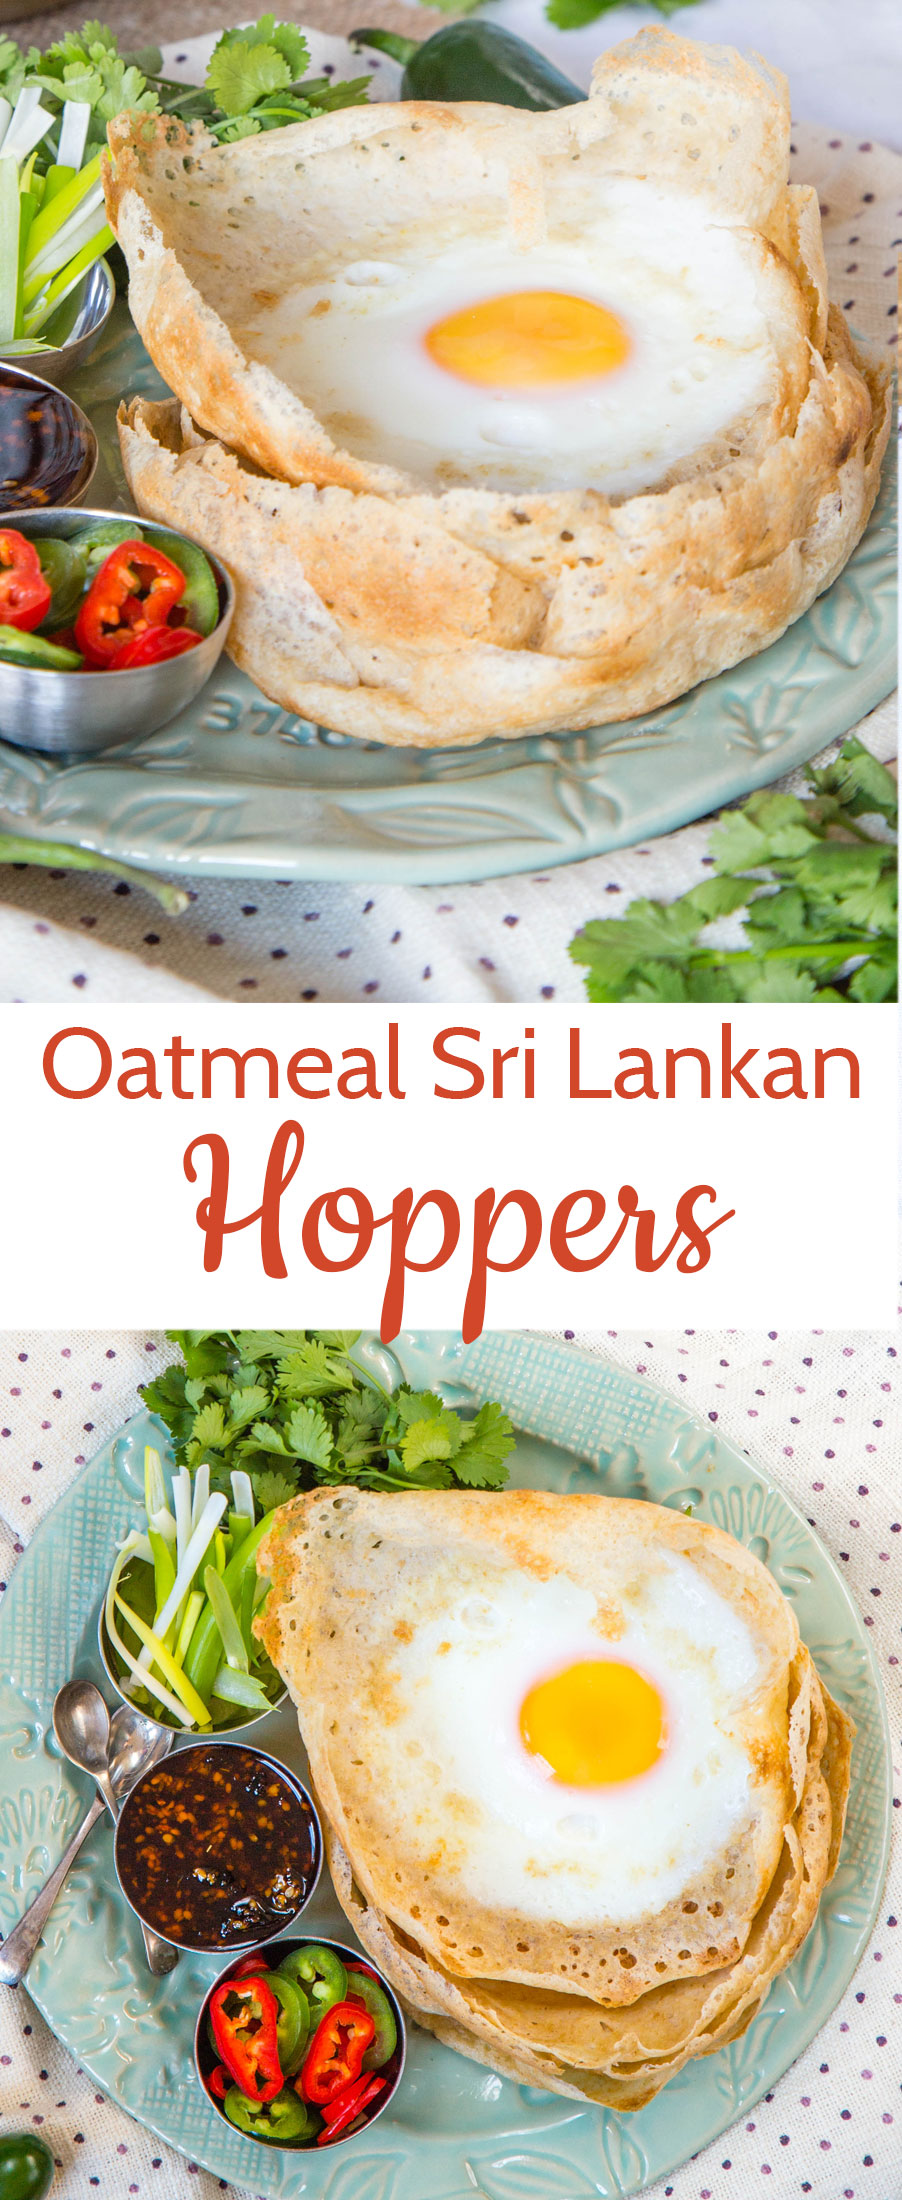 These hoppers - Sri Lankan pancakes, cooked in a bowl shaped pan with an egg - are a great breakfast or brunch dish, especially when made with oat flour, as we have here